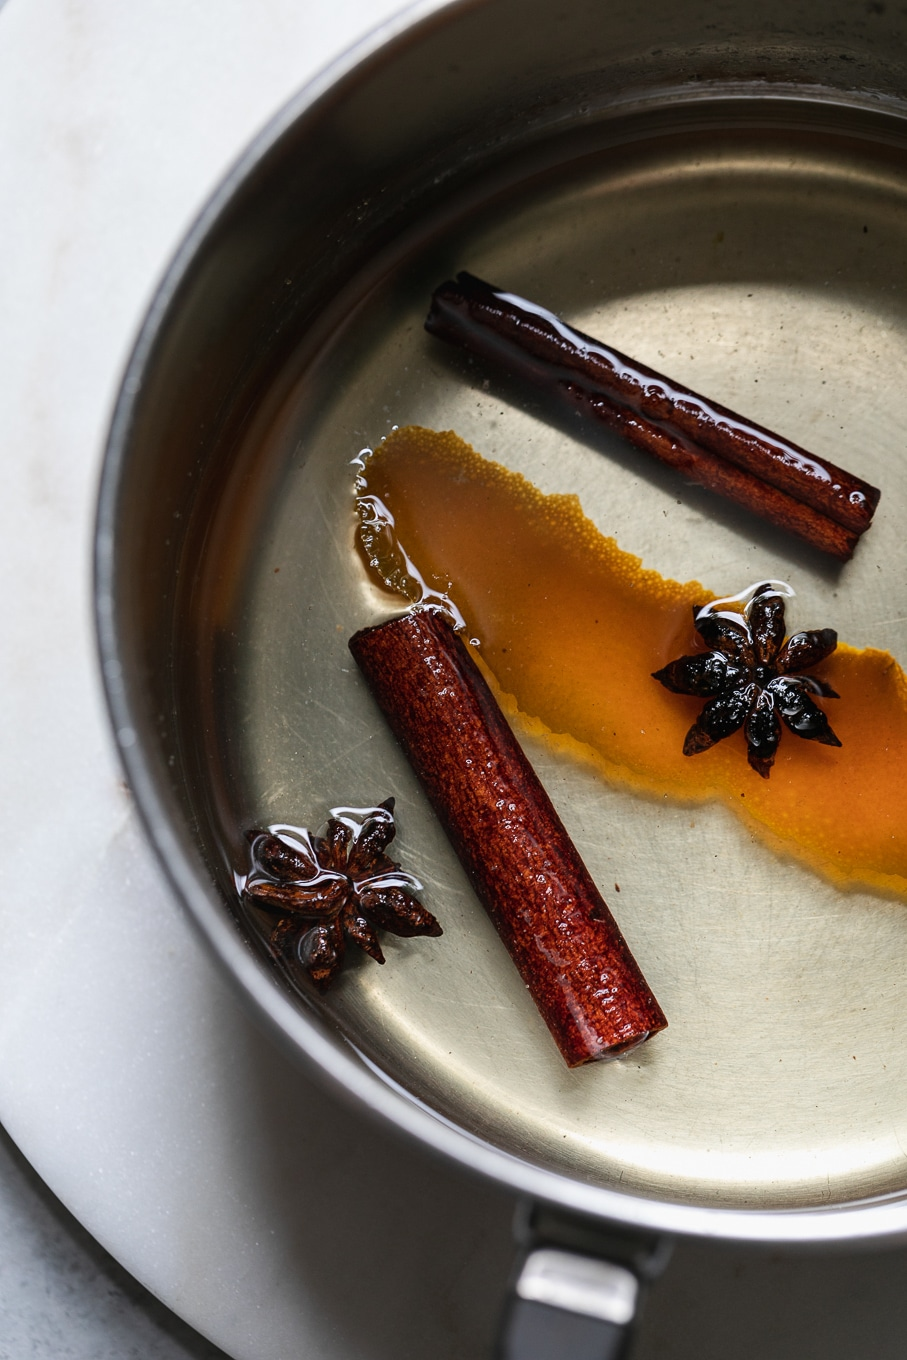 Close up shot of a saucepan filled with simple syrup, cinnamon sticks, star anise, and an orange peel